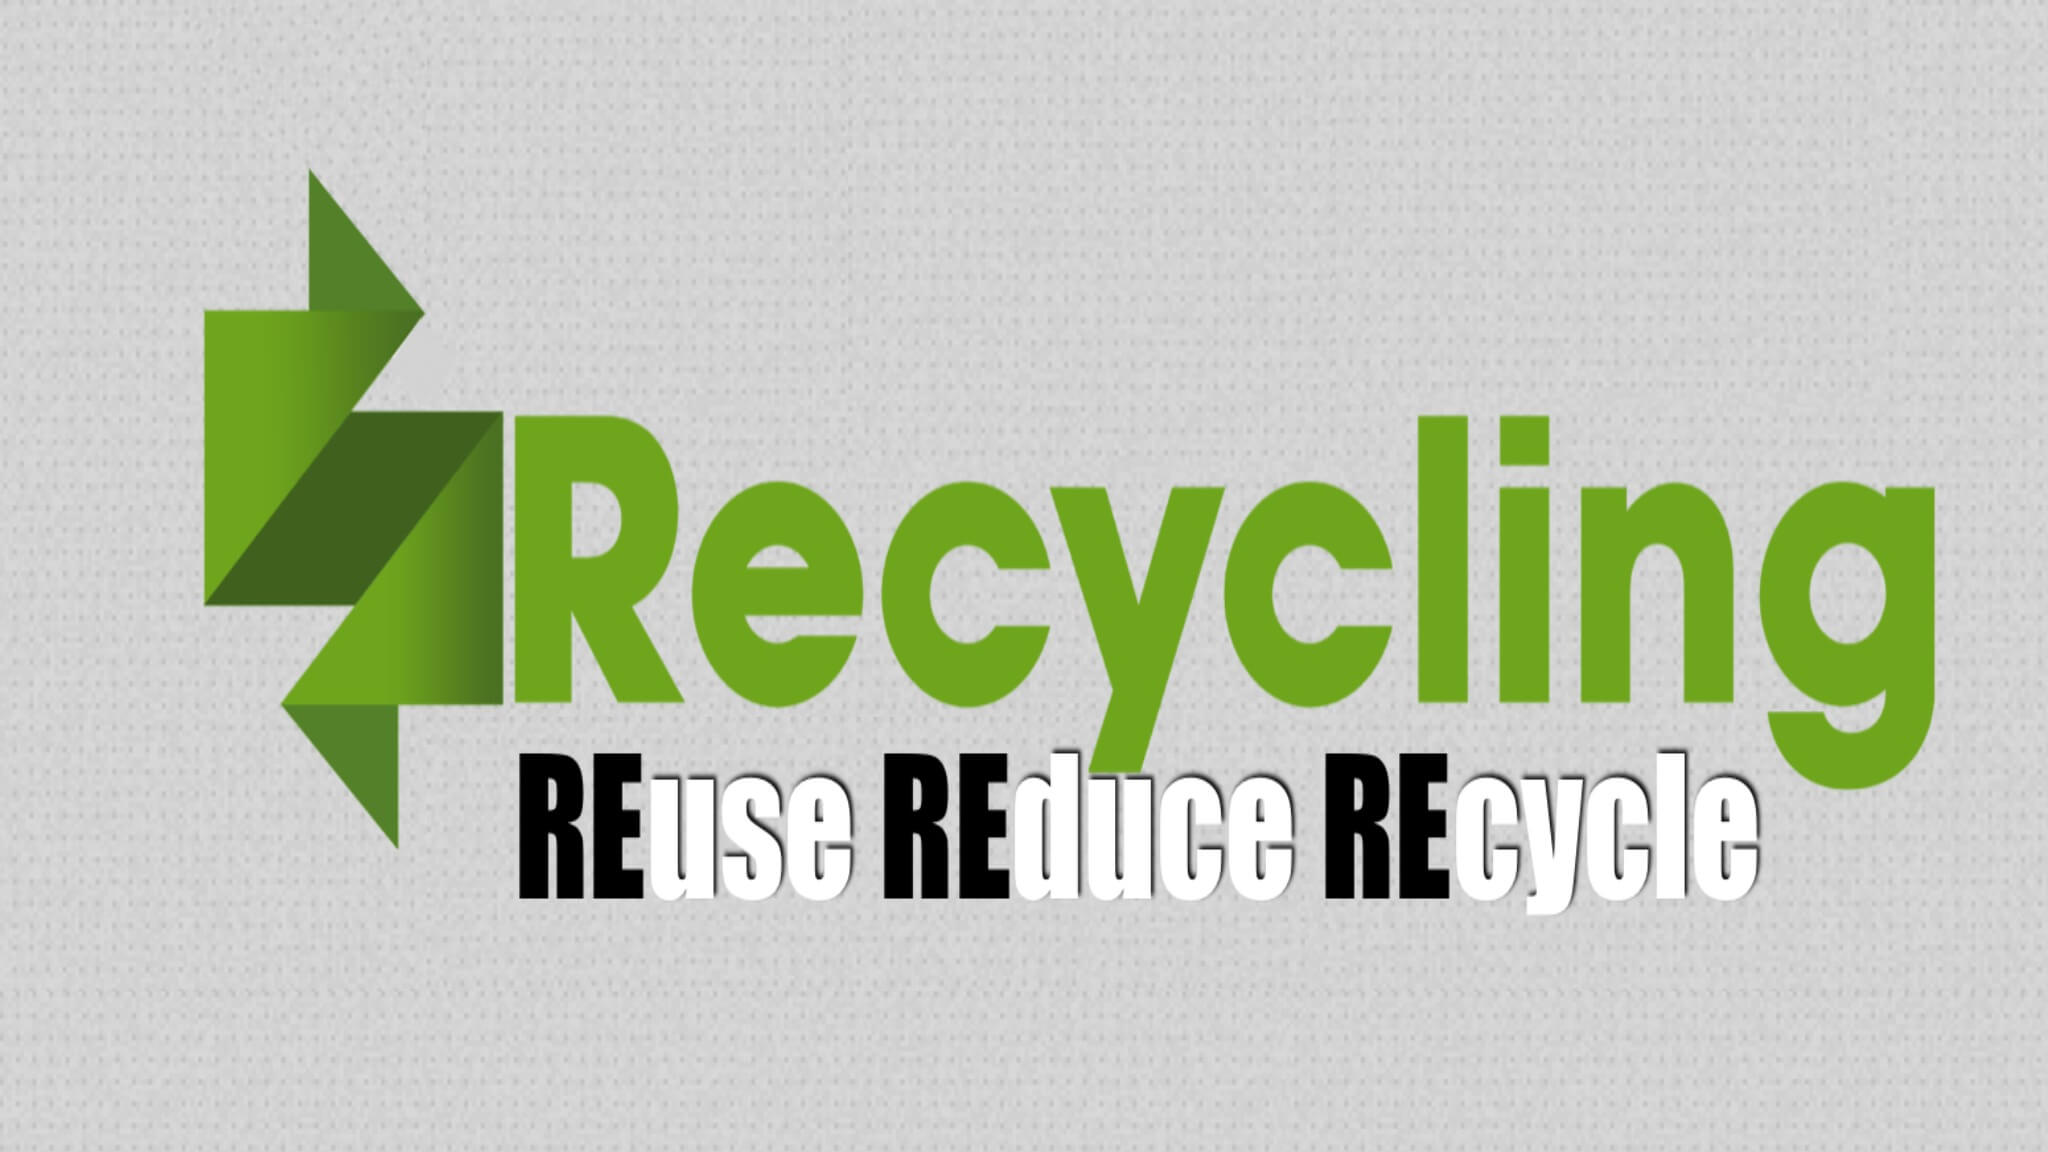 Rugby-Recycling-waste.-2